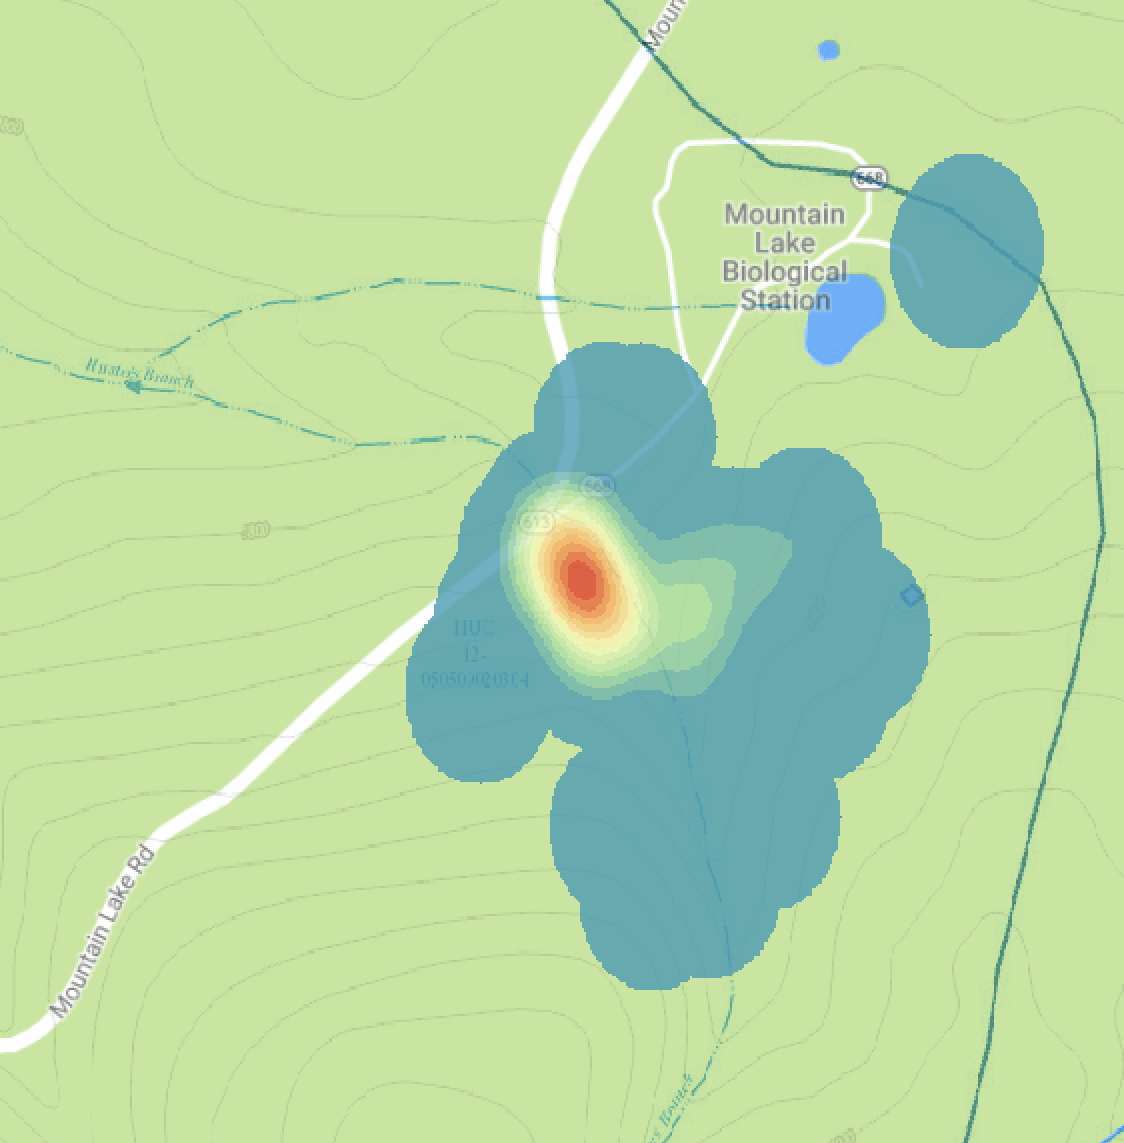 Spatial ecology - In 2016, we recorded the location of 101 P. montanus and 38 P. glutinosus at MLBS. We marked each individual to make sure that we didn't observe the same individual more than once. The heat map to the right shows occurrences of P. montanus, with red indicating areas of greatest density and blue indicating areas of lowest density. As of now, I don't have any plans for this data. If you're interested in this system and would like to run some spatial analyses, get in touch!